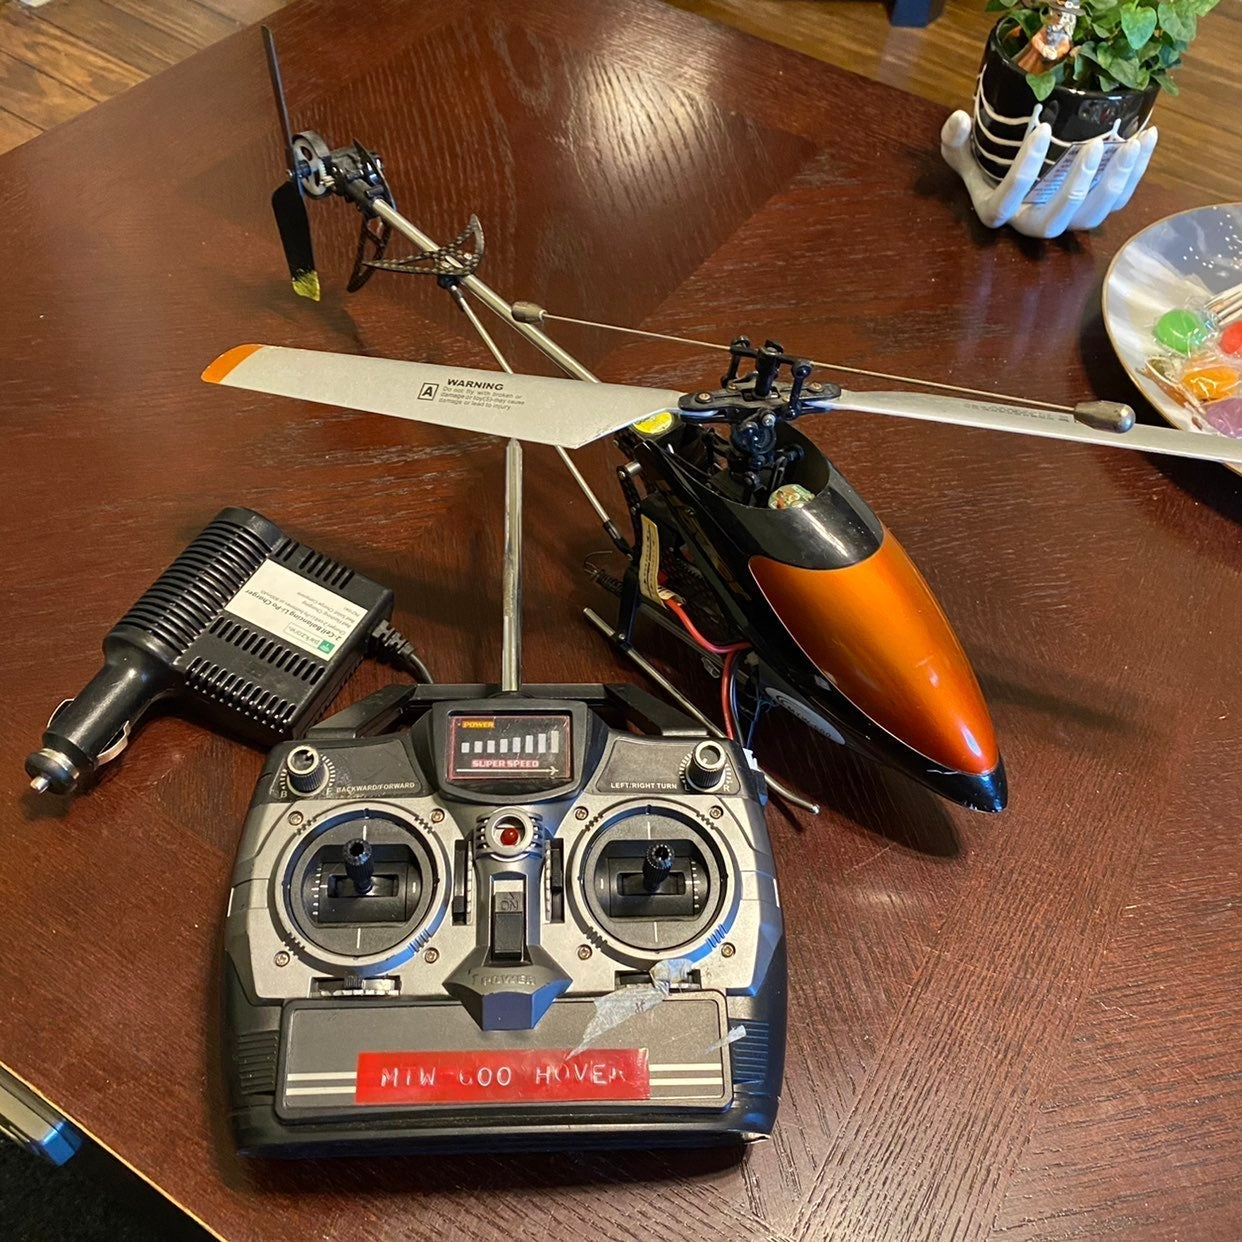 FBL RTF RC Electric Helicopter Used